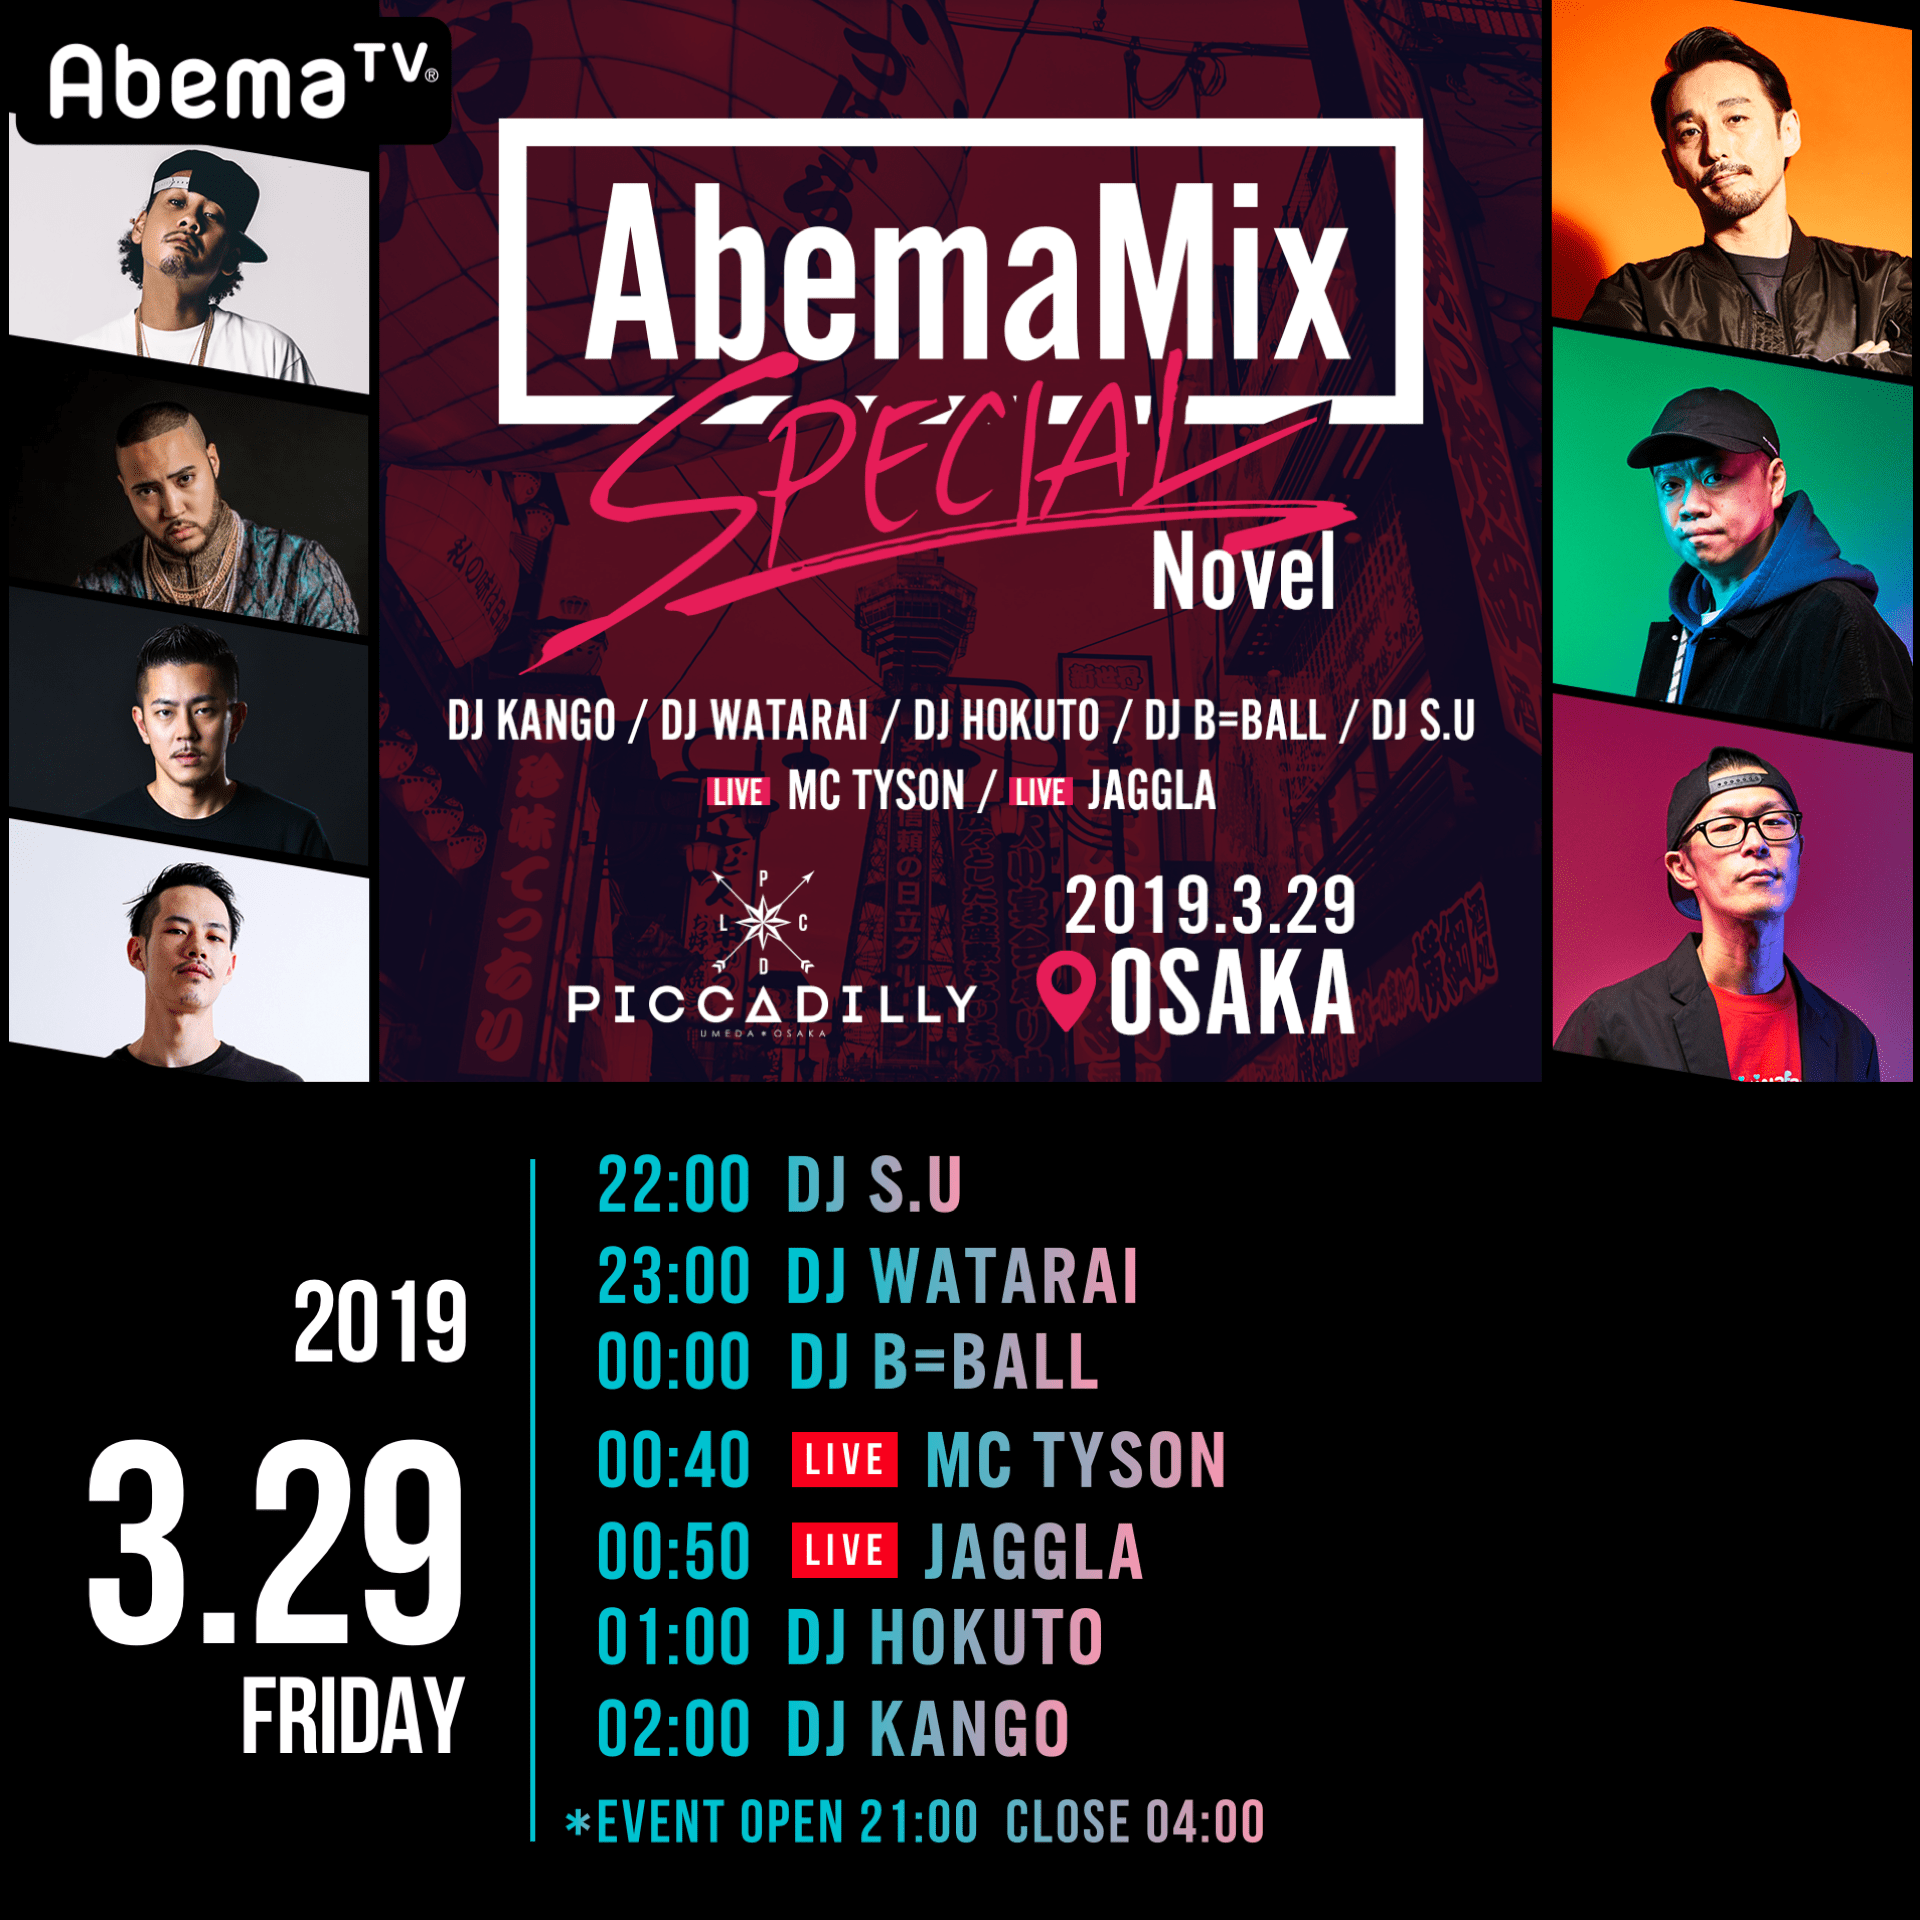 Abema Mix SPECIAL in OSAKA